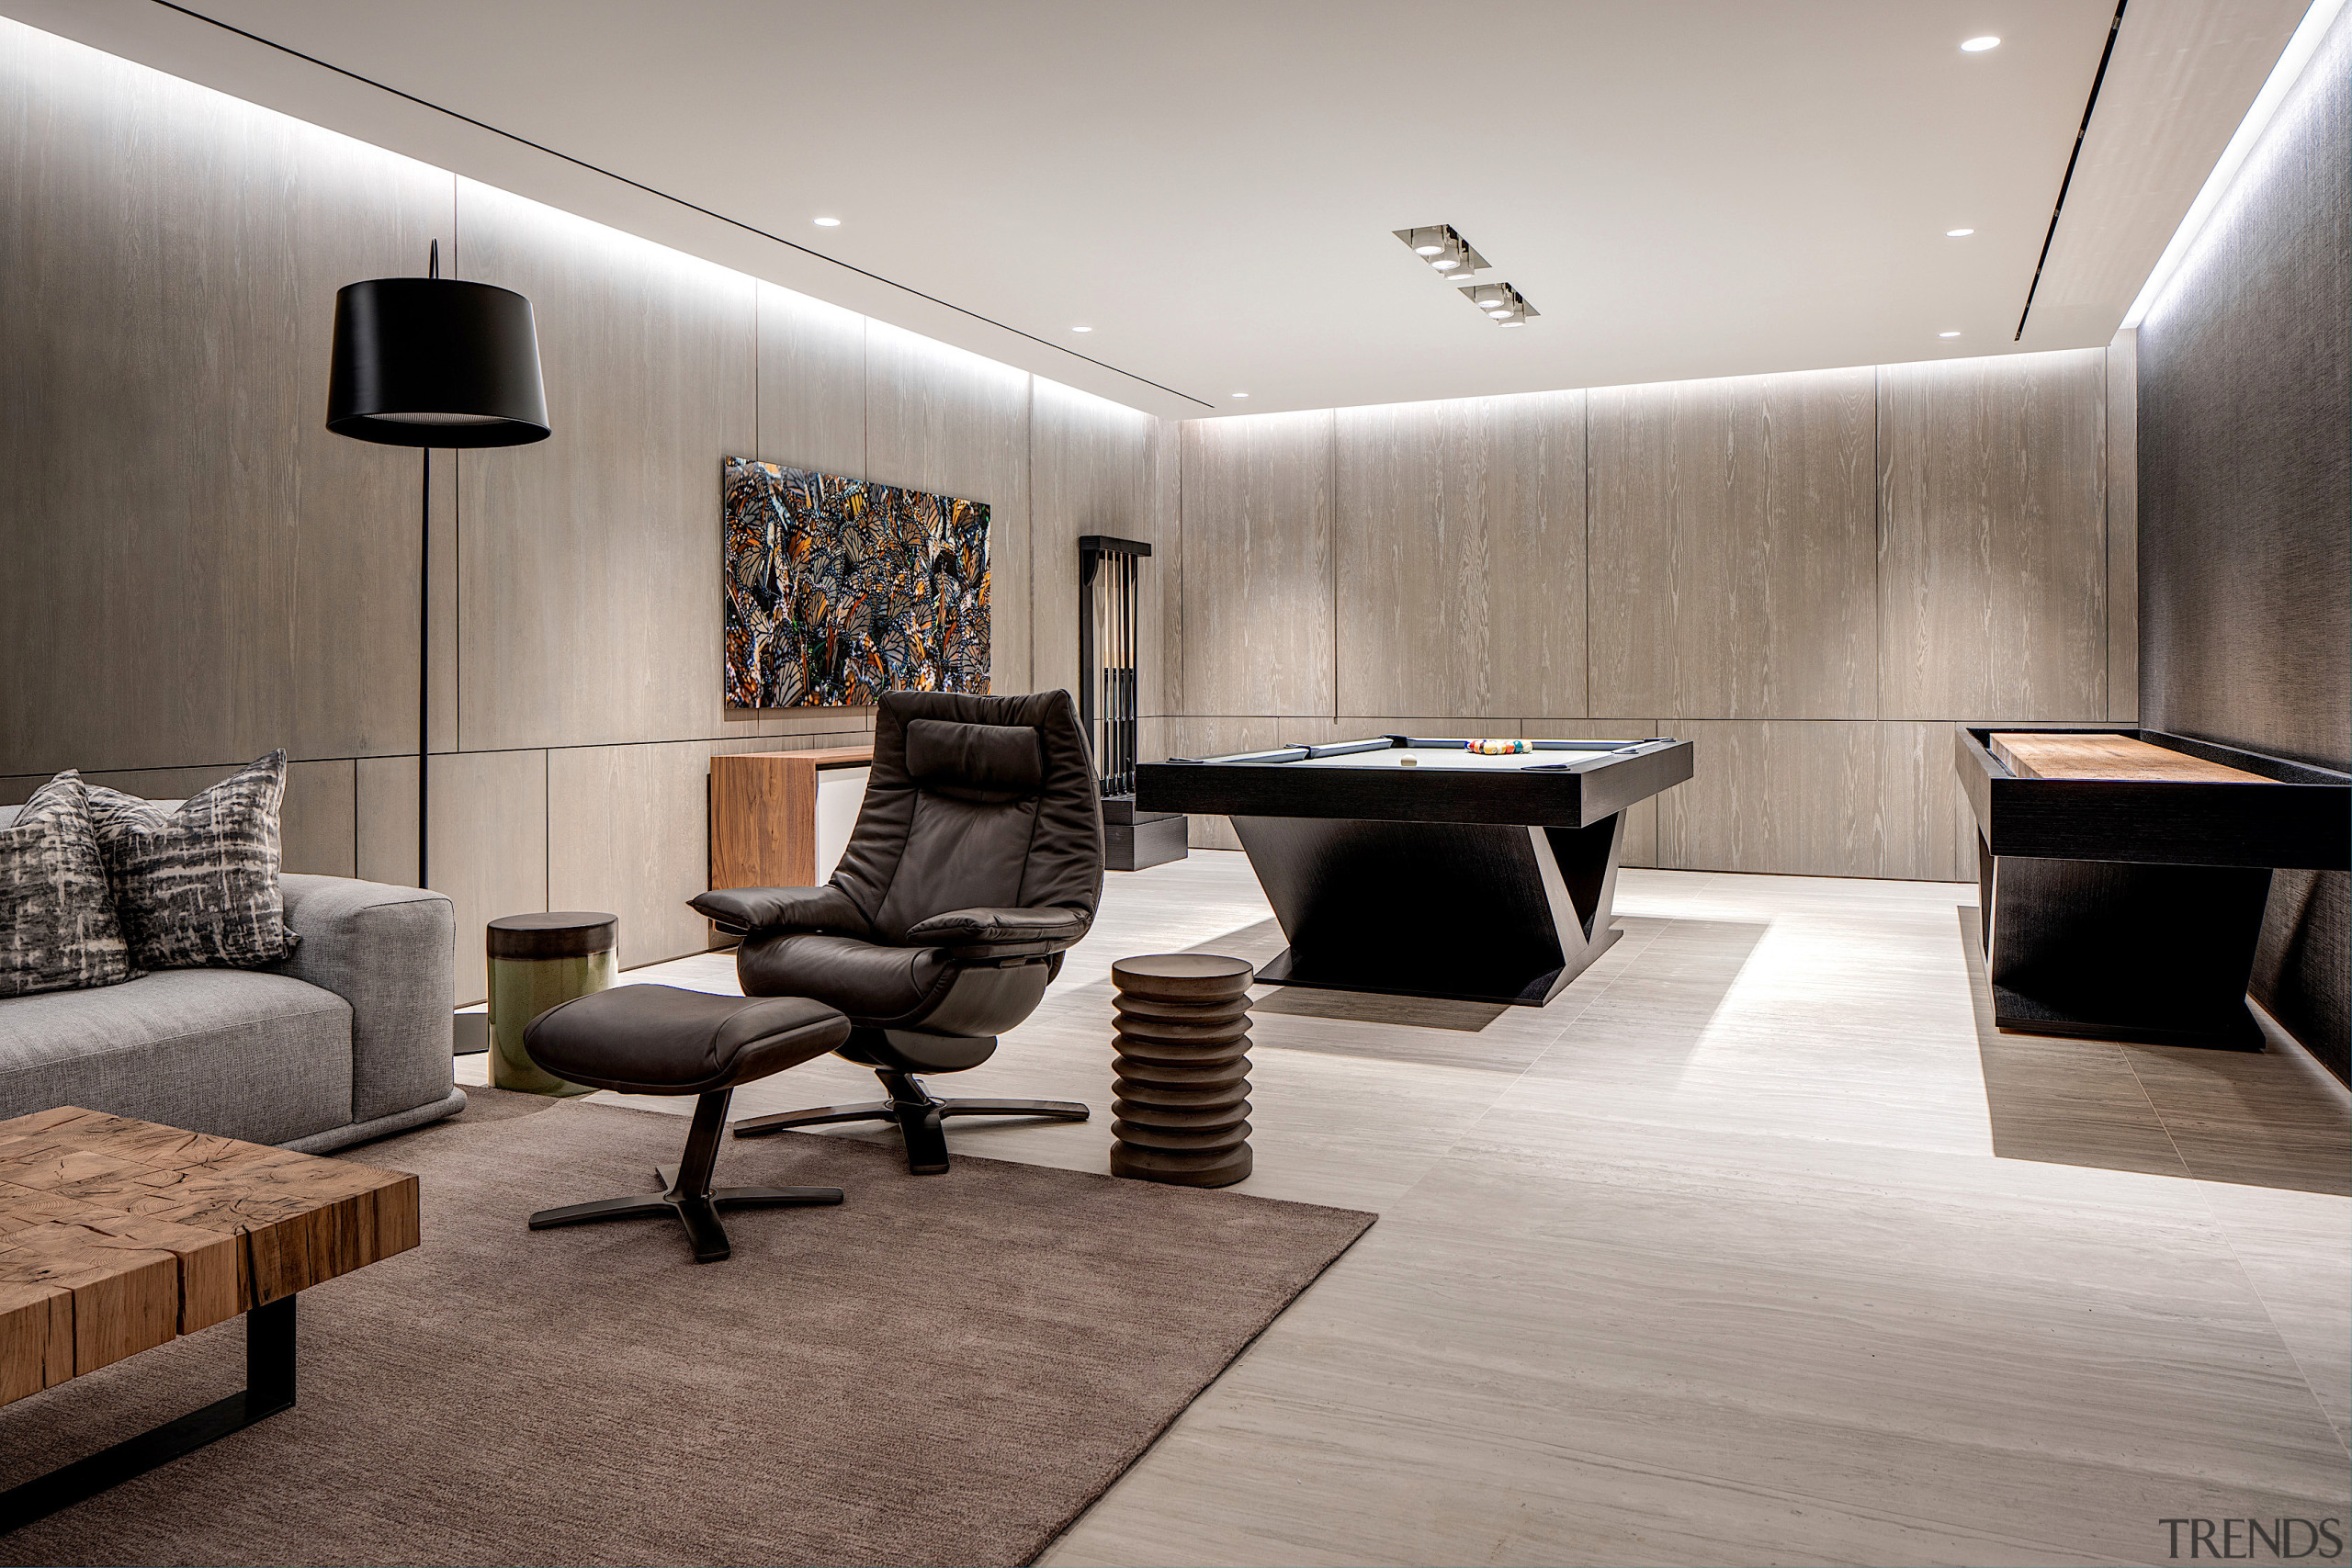 The larger, dramatic spaces are balanced by intimate